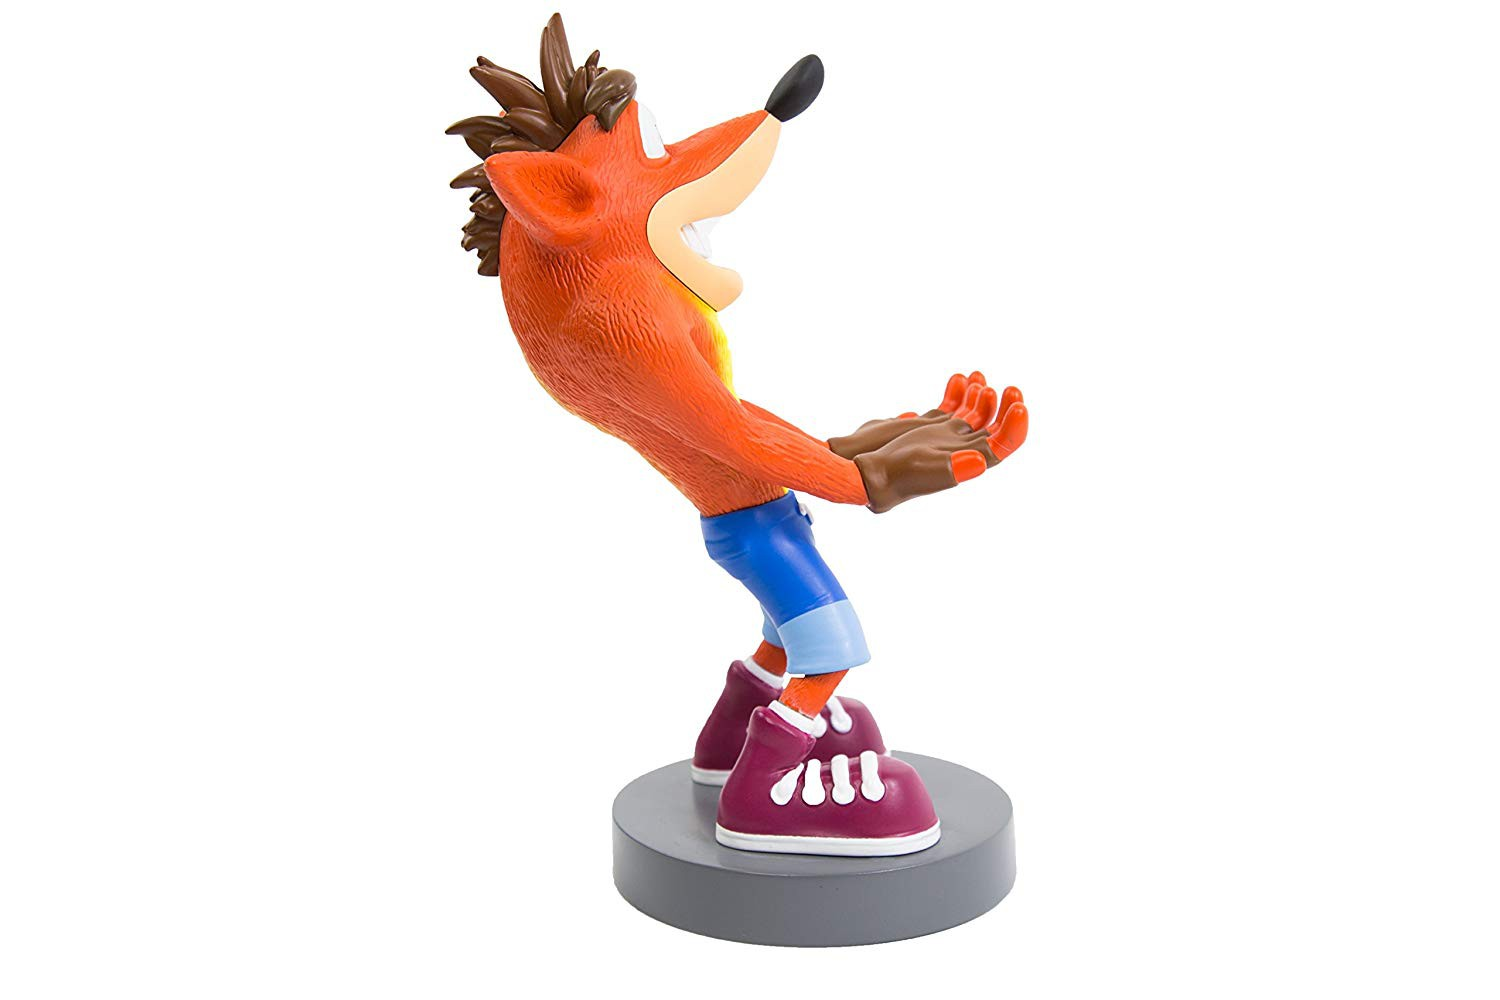 Crash Bandicoot Cable Guy stand